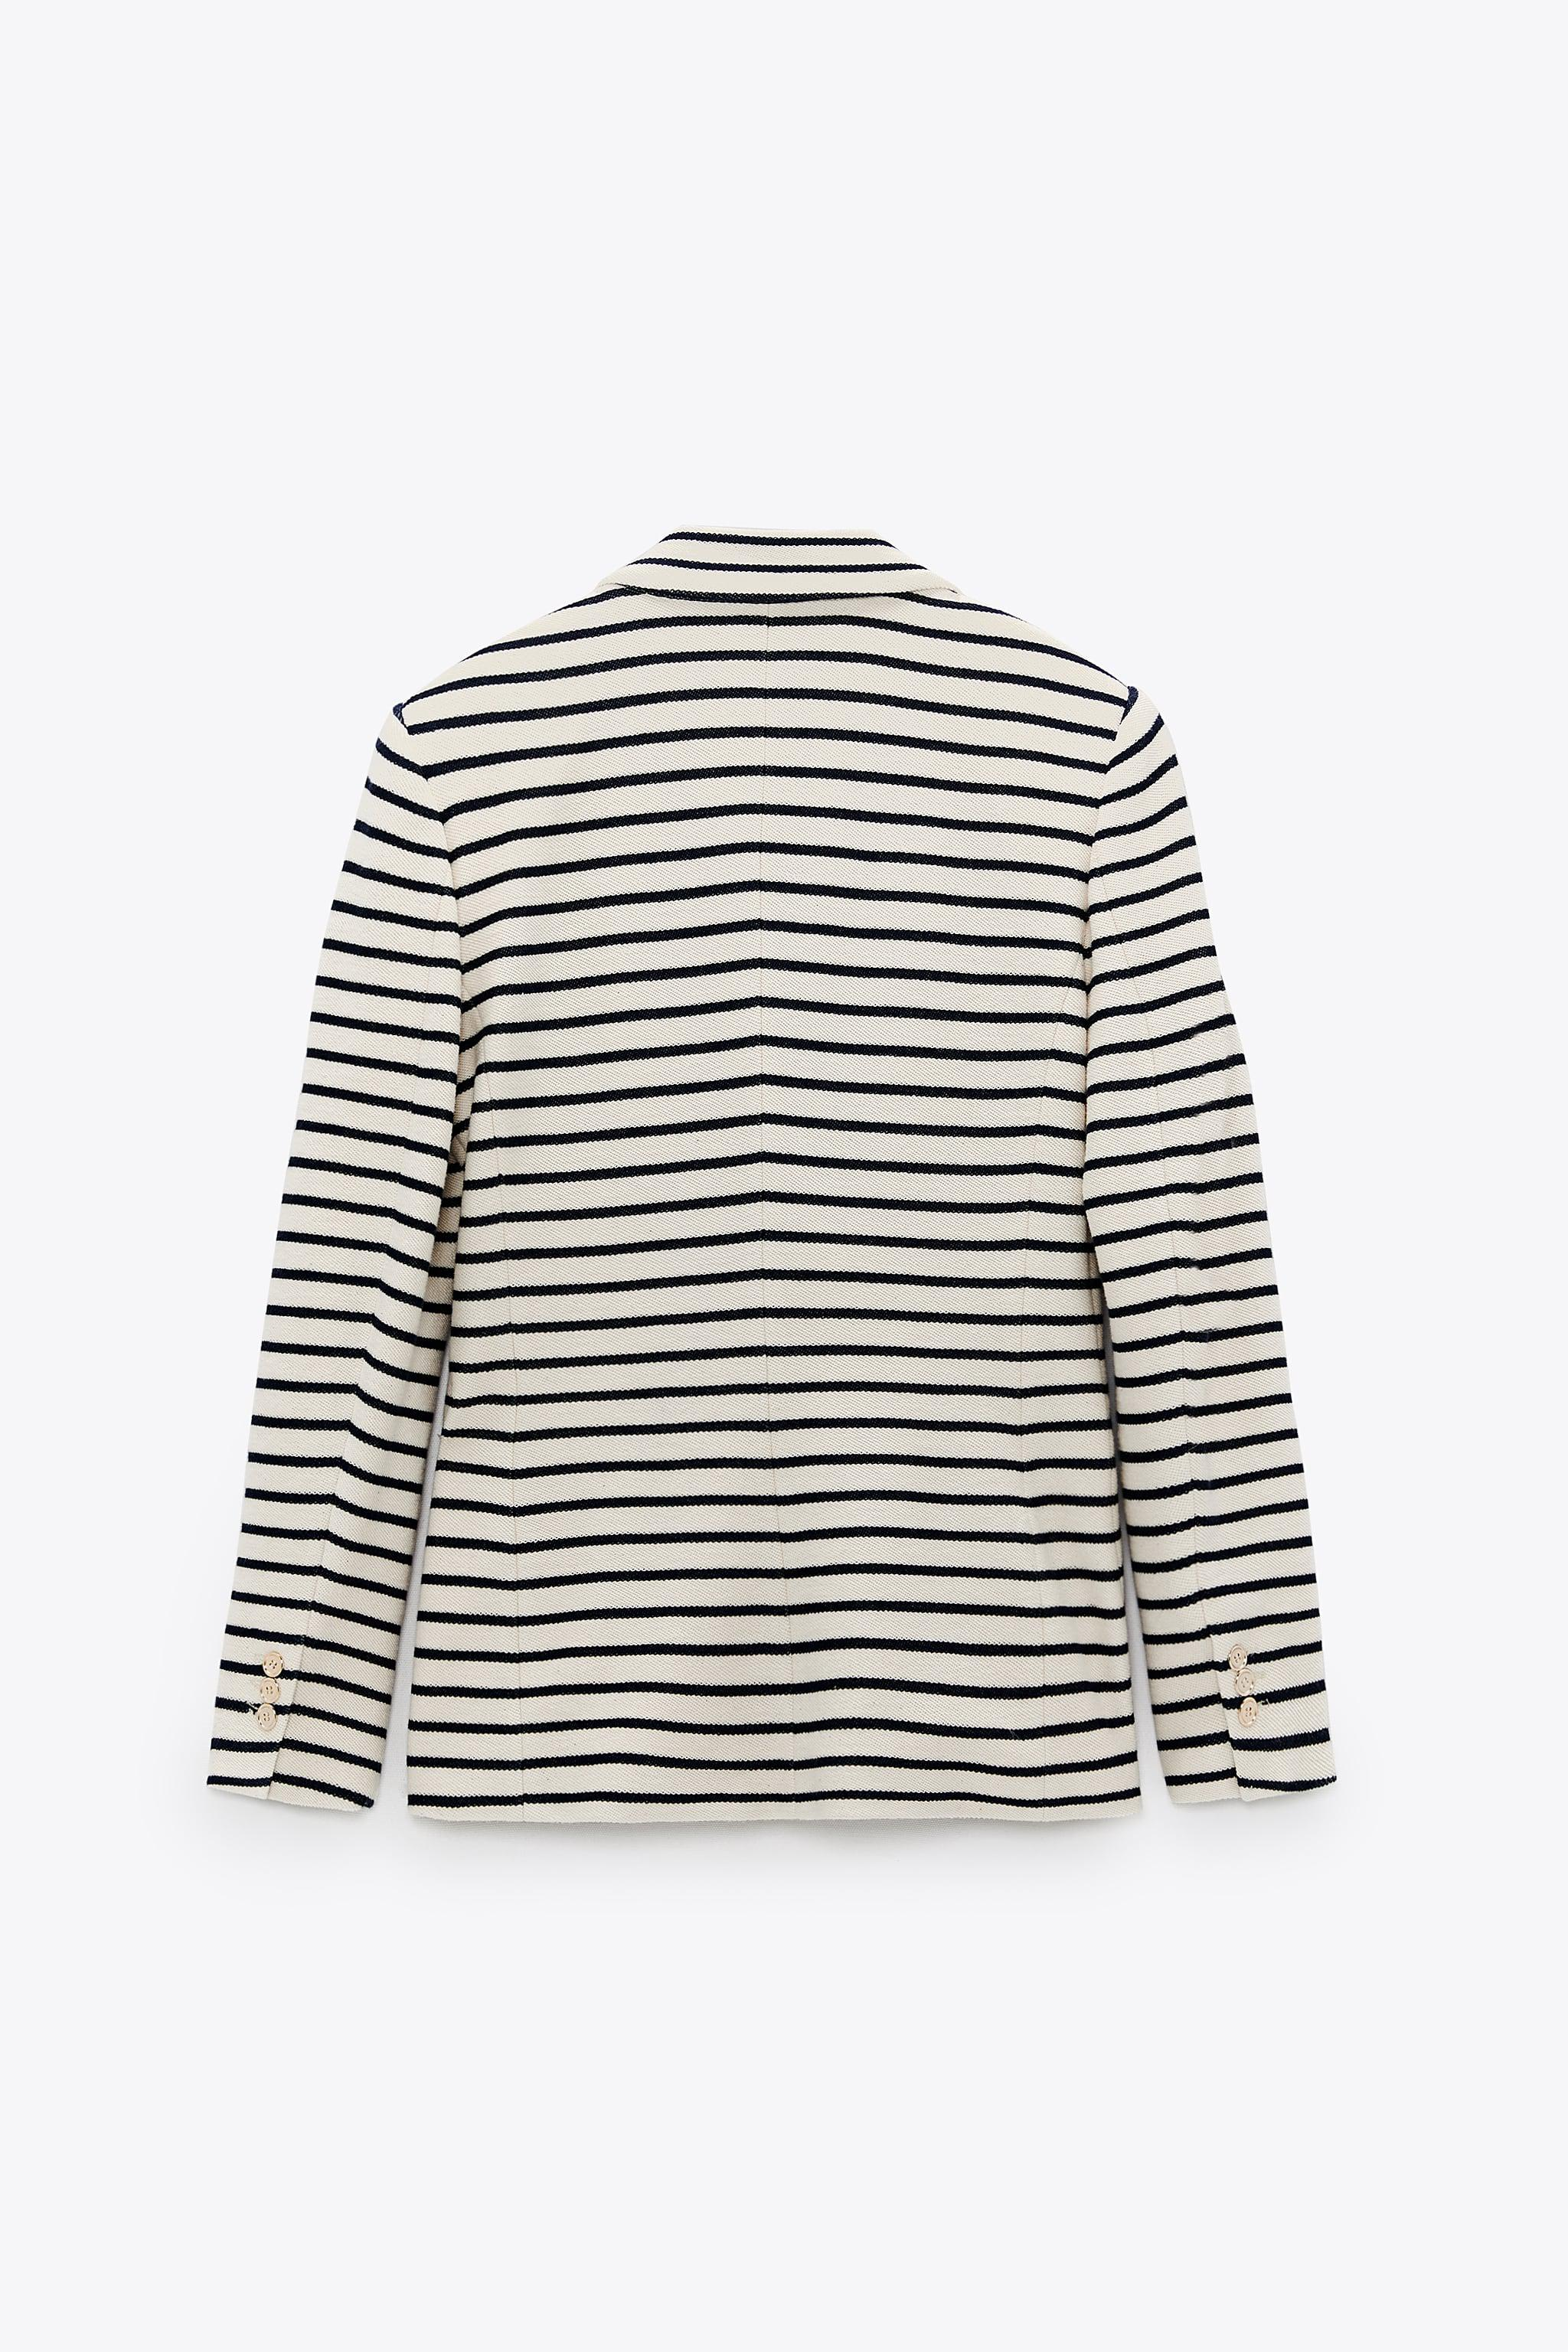 DOUBLE BREASTED STRIPED BLAZER 7